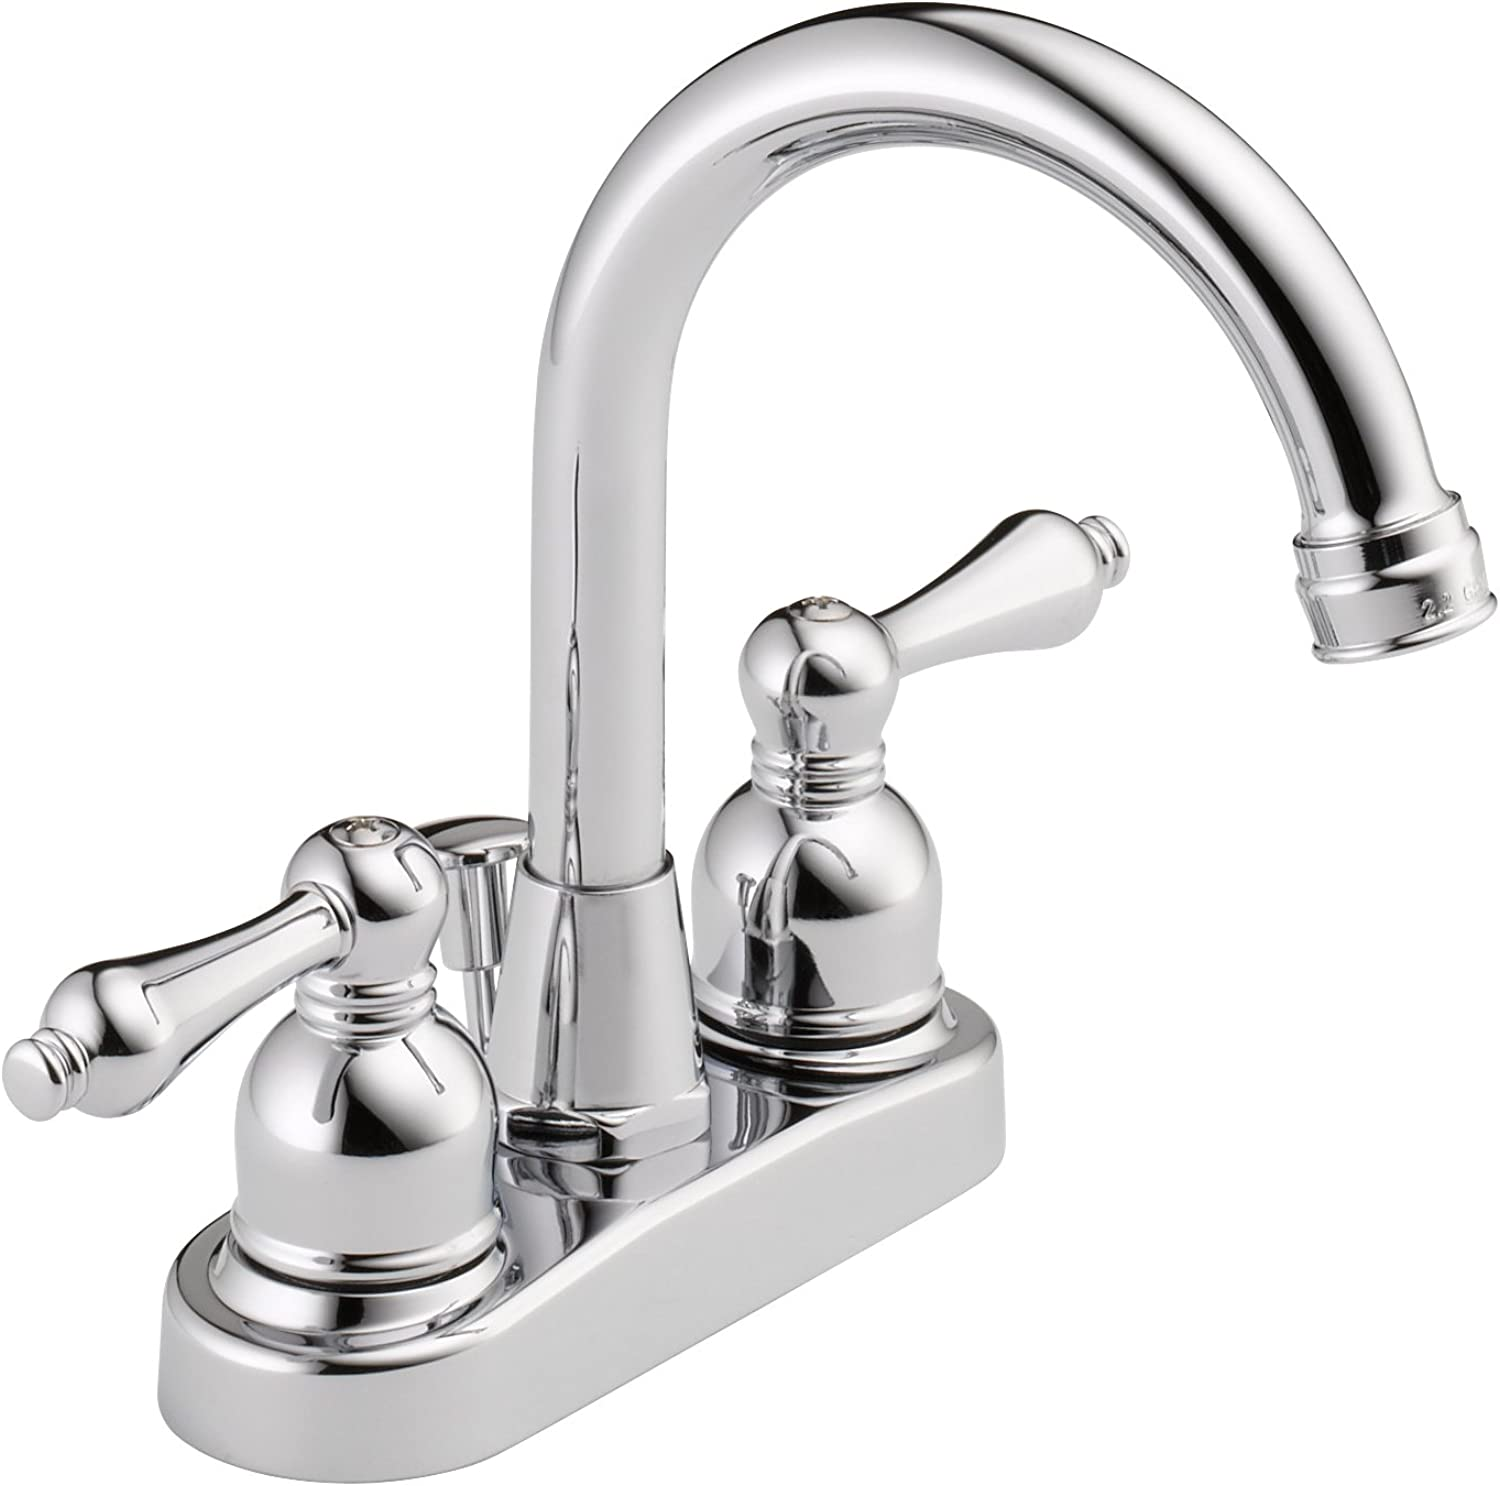 Westbrass WAS00X-26 Two Handle Hi-Arc Spout Centerset Bathroom Faucet, Polished Chrome